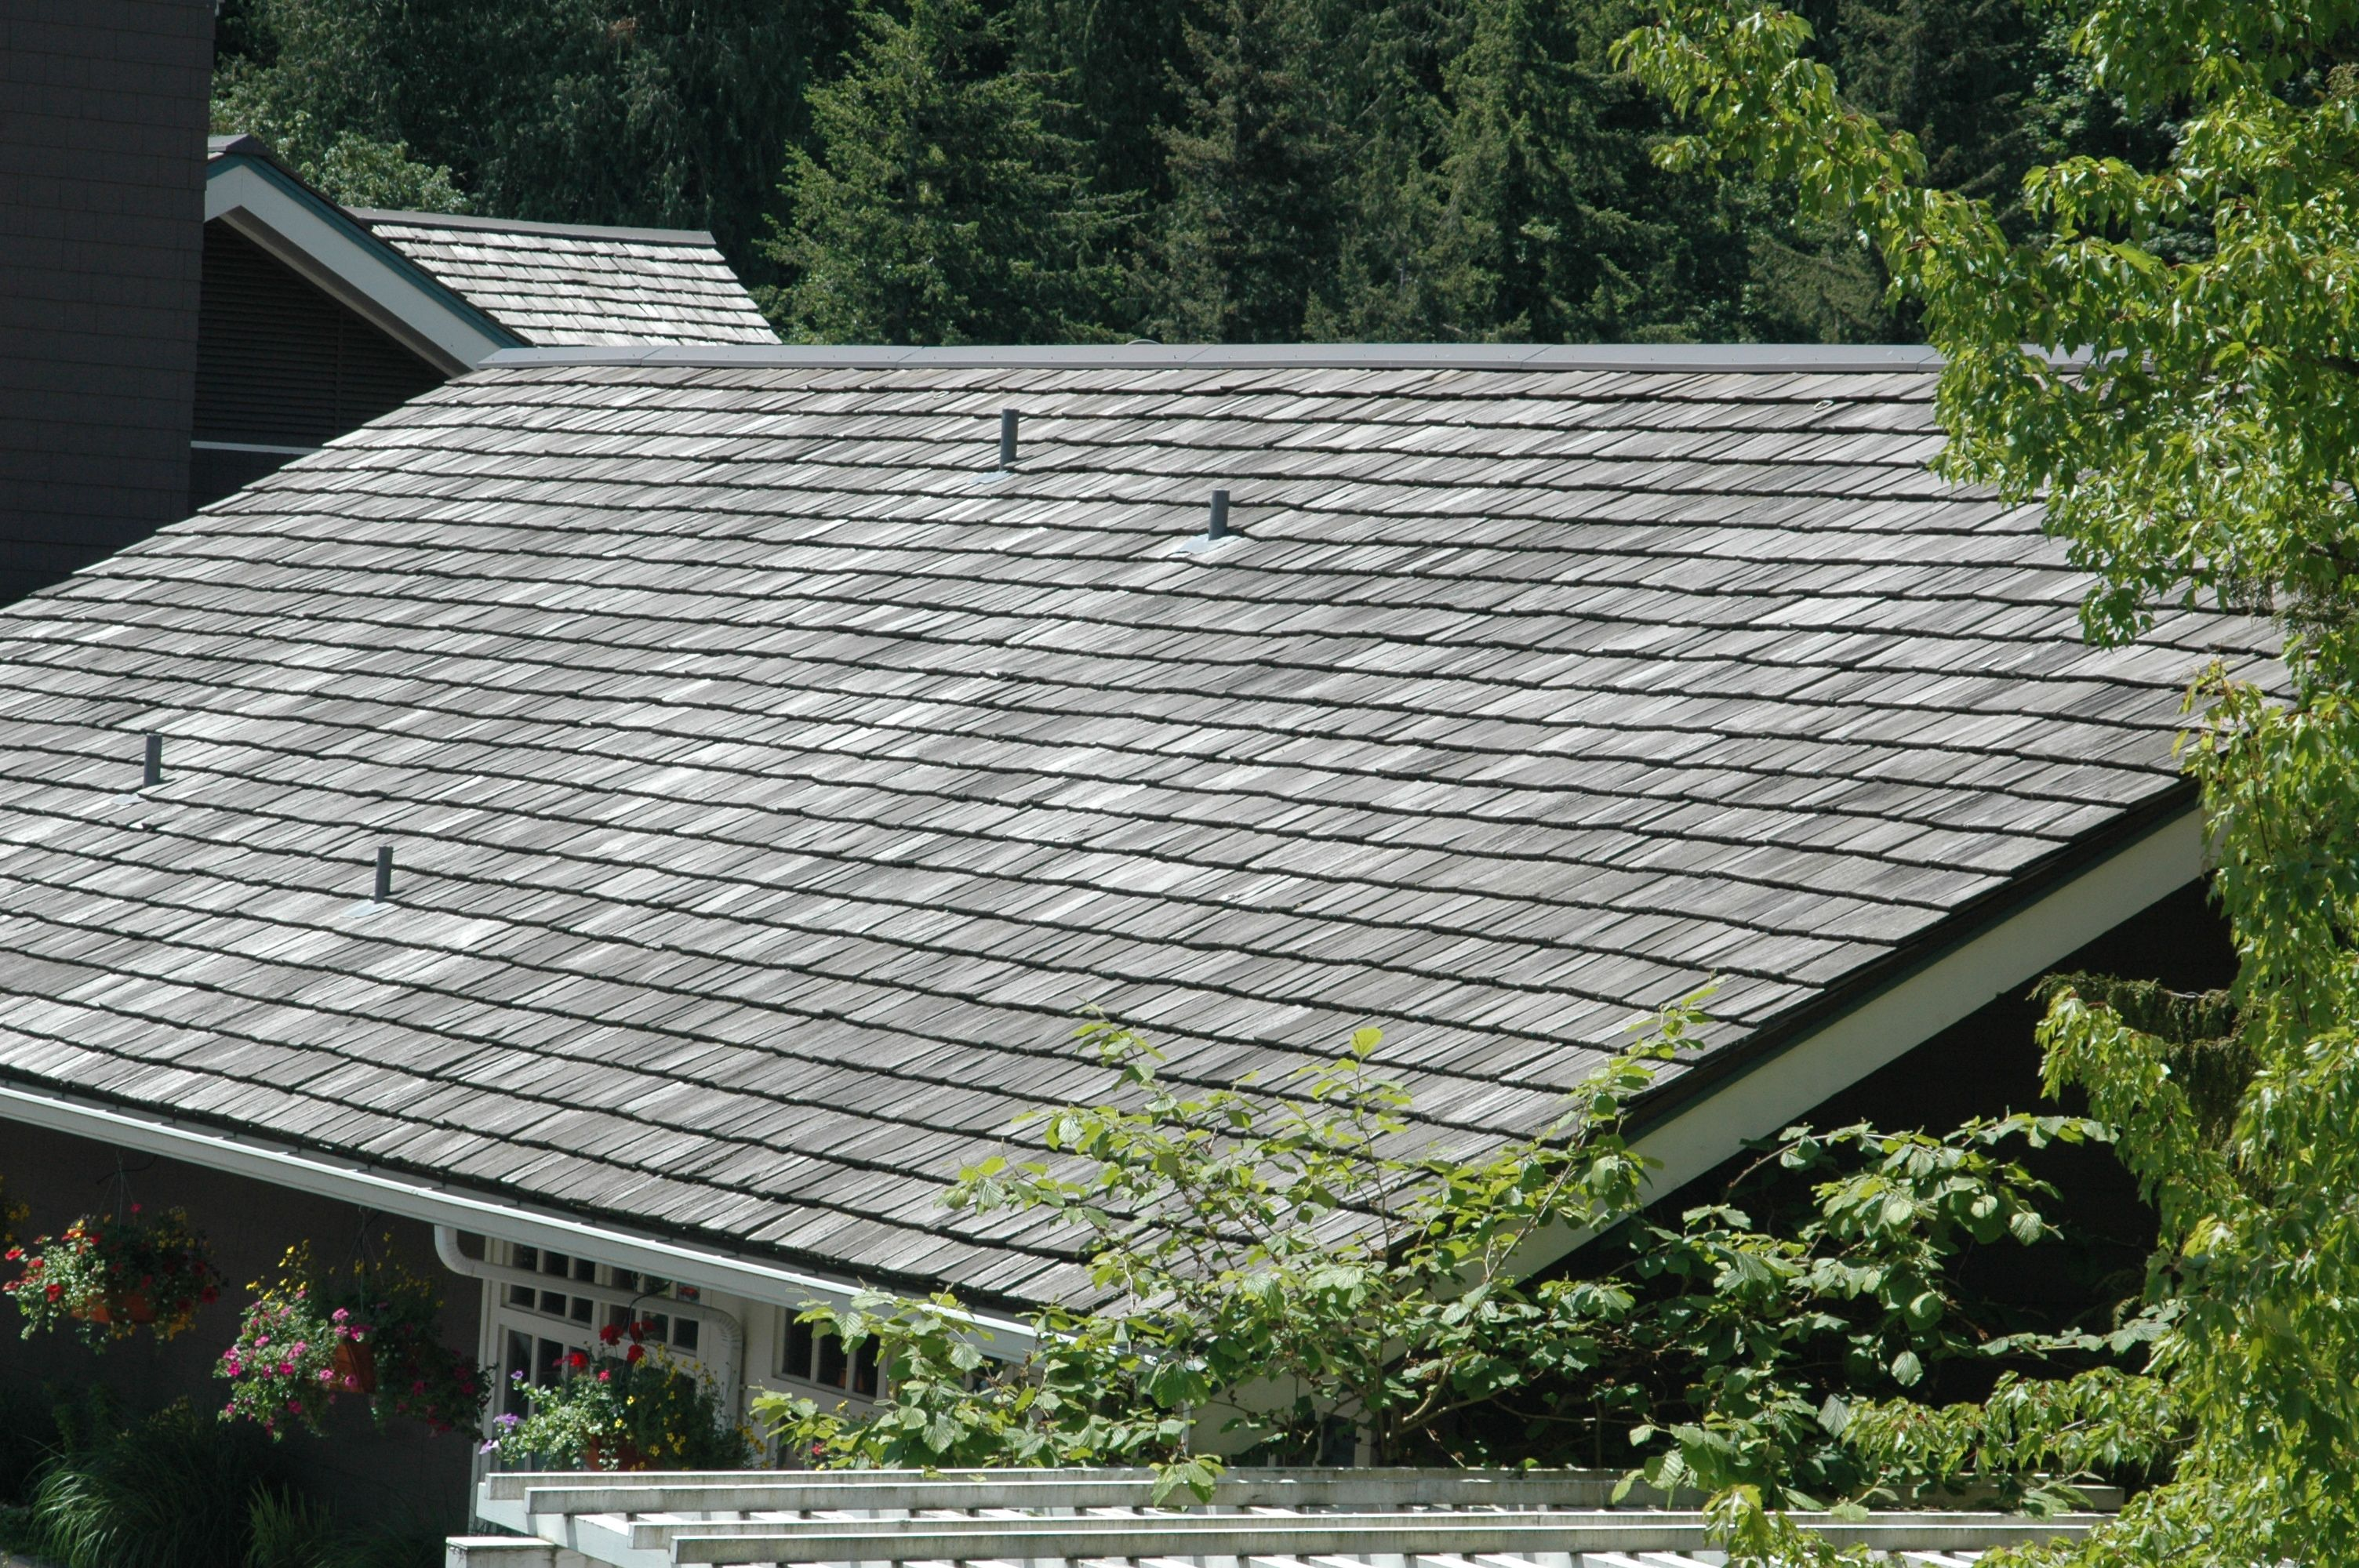 Rs 20 Permanent Roof Safety Anchors Installed Near The Ridge On A Wood Shake Roof Near Snoqualmie Falls Wa Wood Shake Roof Shake Roof Wood Shakes